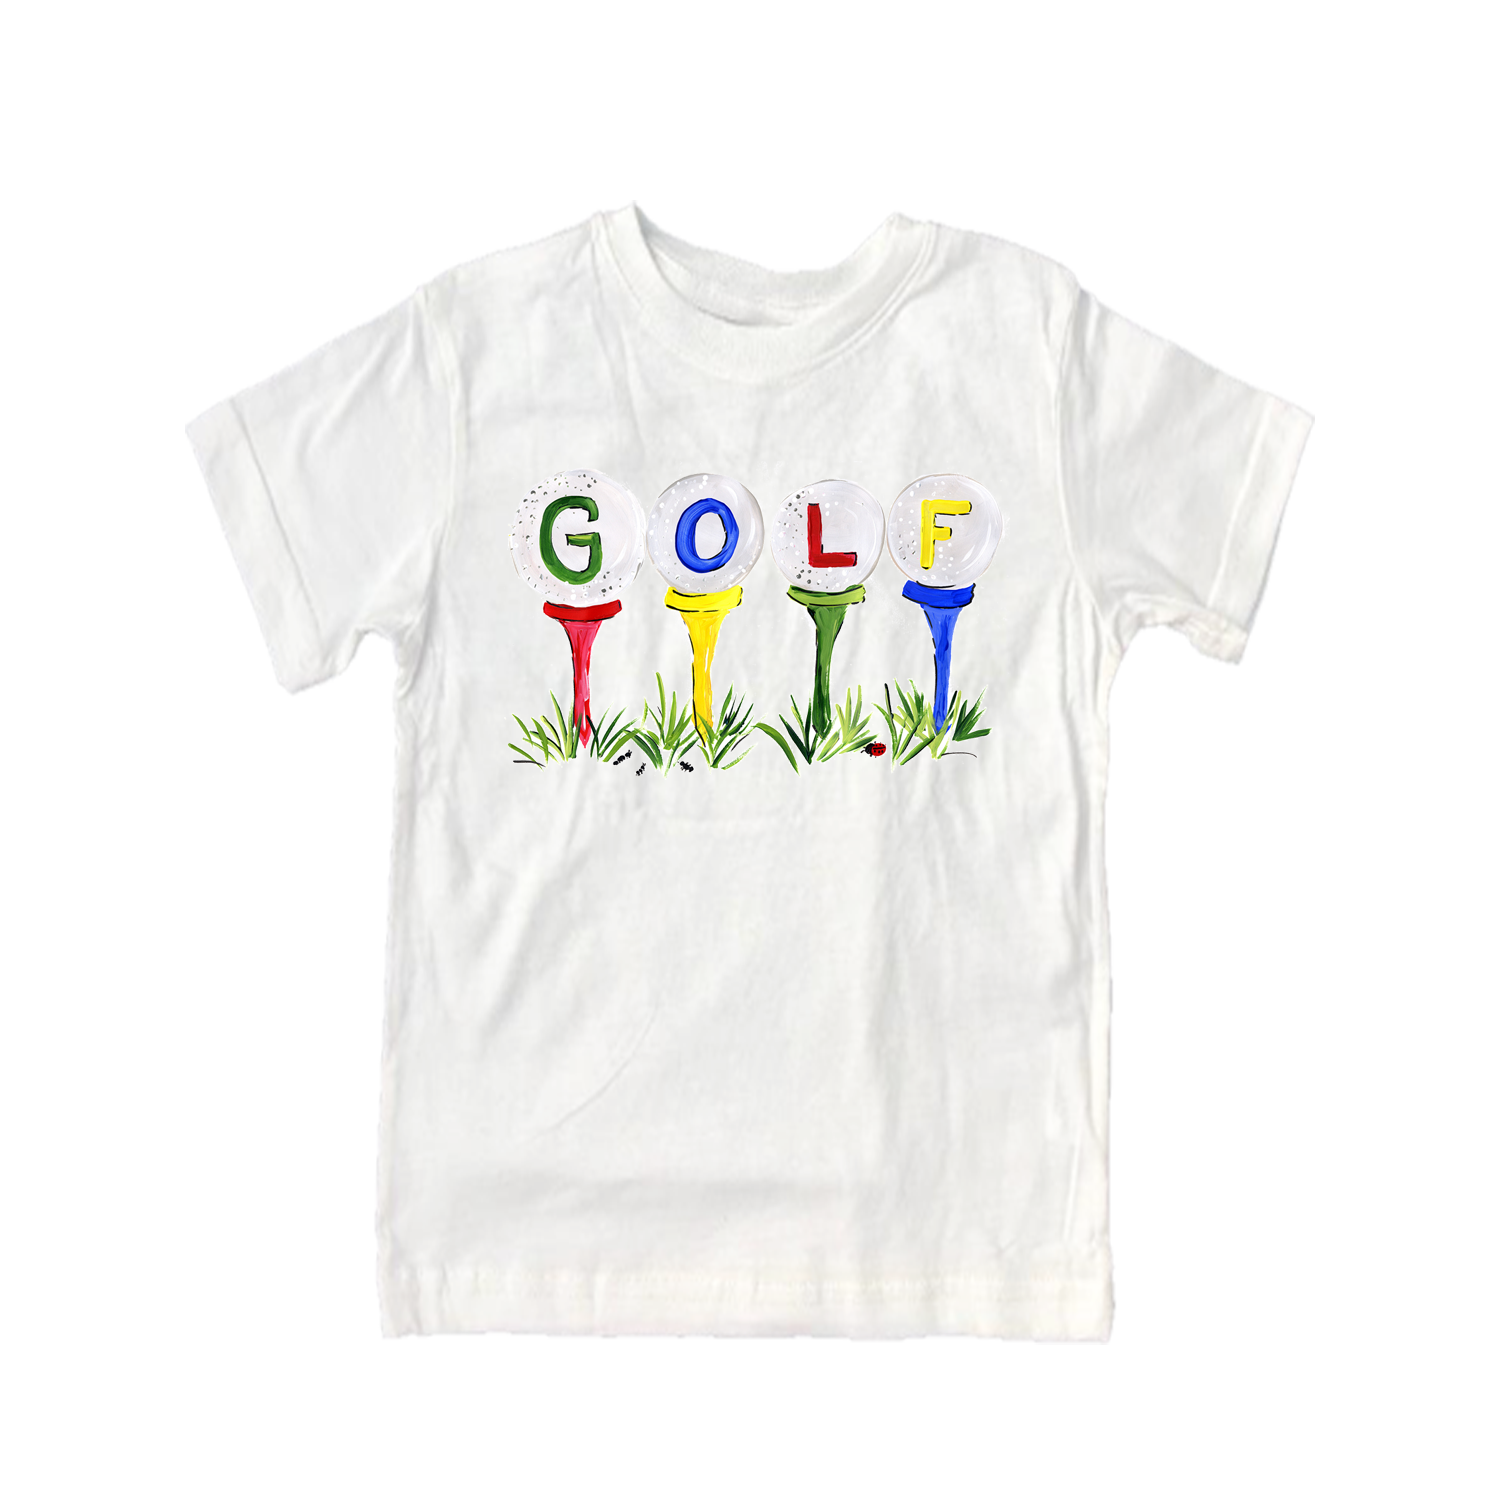 Boys Tee Shirt TS2486